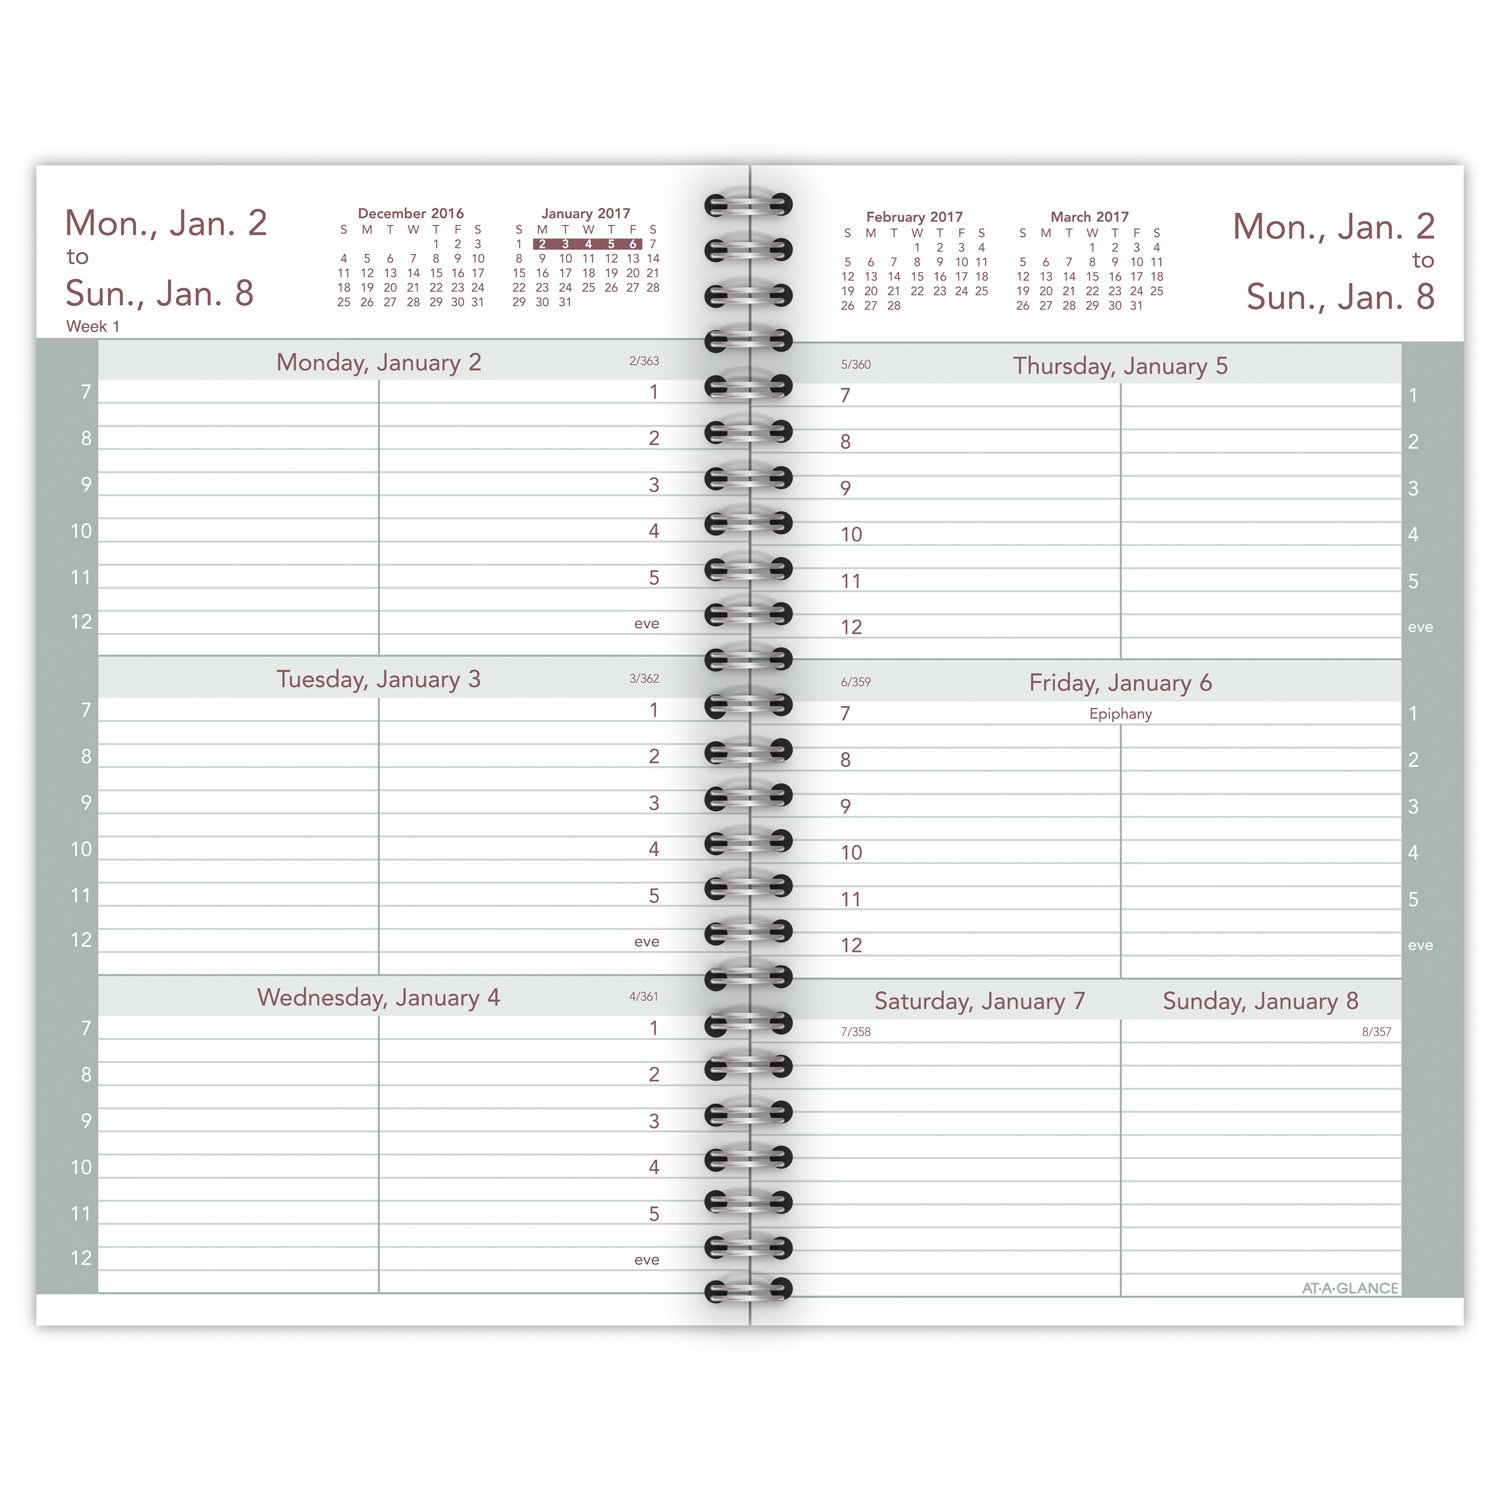 AT-A-GLANCE Weekly Planner 2017 Refill for 70-008, 3-1/4 x 6-1/4'', Black (70-904-10)